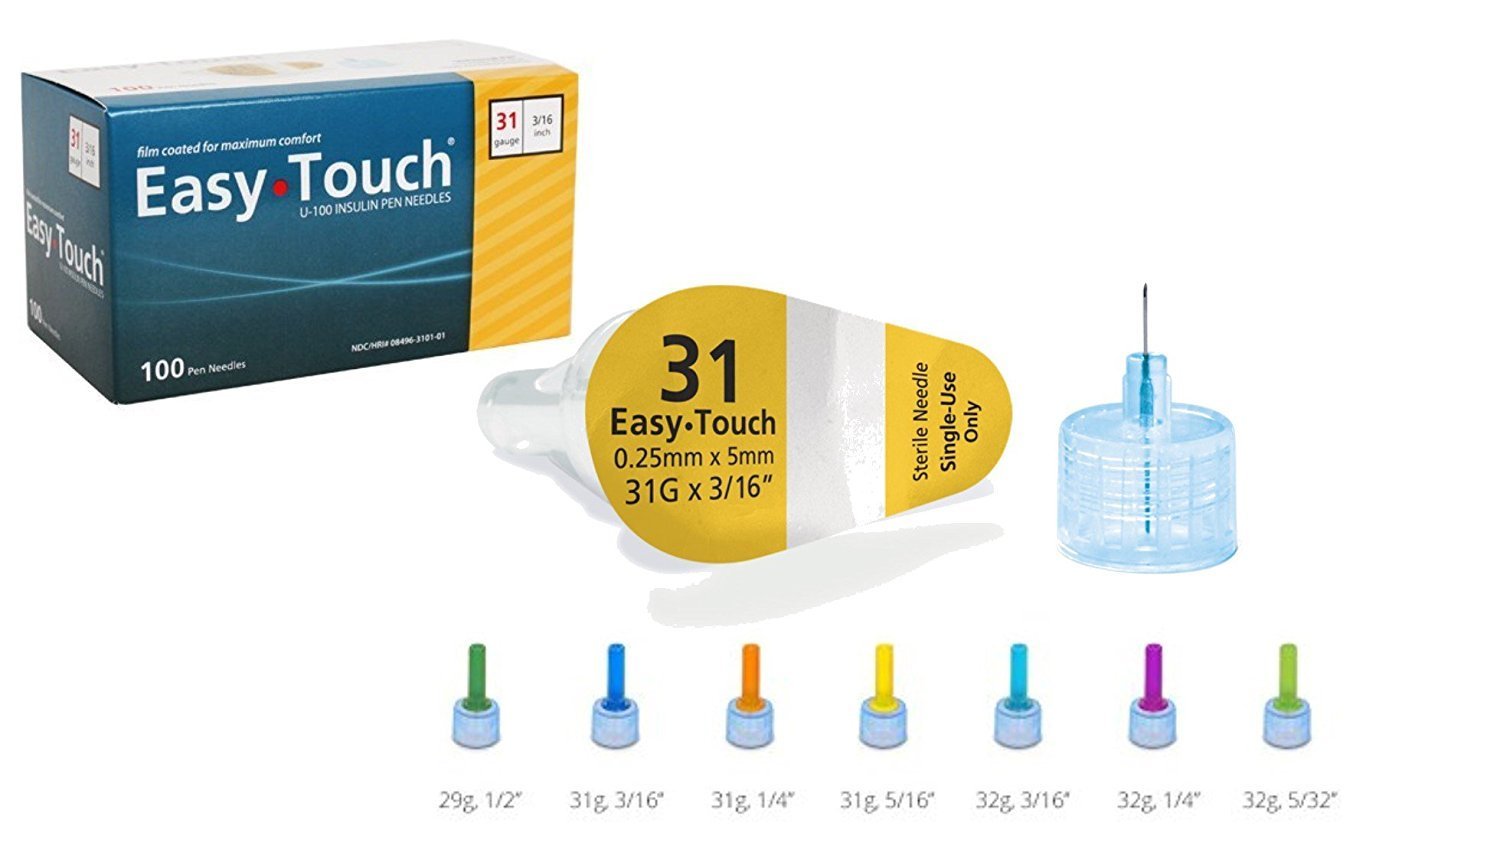 Easy Touch Pen Needles 31 Gauge 1 4 Inches Box Of 100 Easytouch Single Handle Kitchen Faucet Diagram Parts For Model 6310 831361 3 16